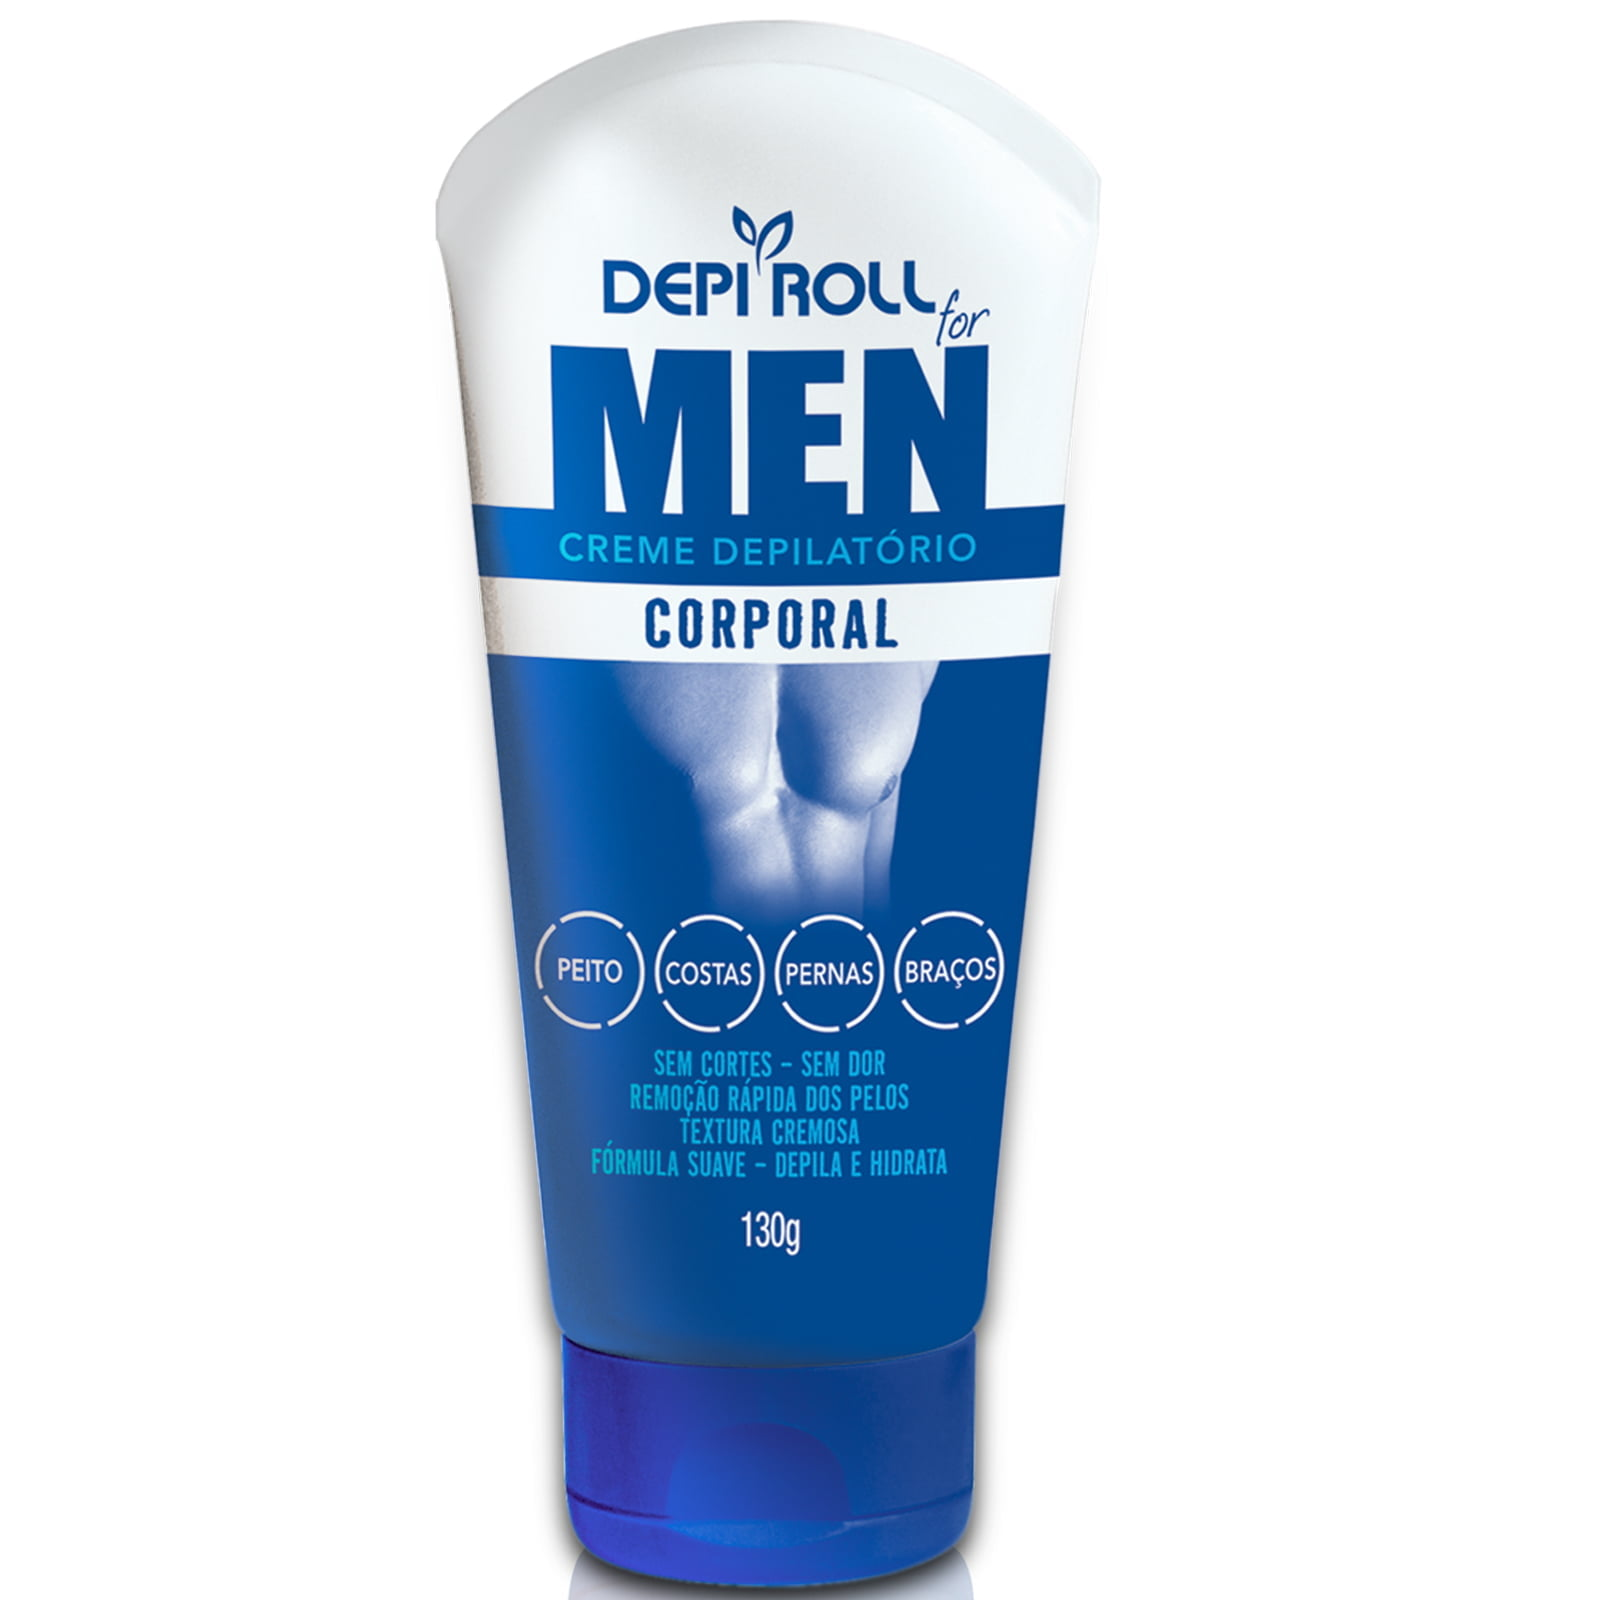 CREME DEPILATÓRIO CORPORAL FOR MEN - DEPI-ROLL